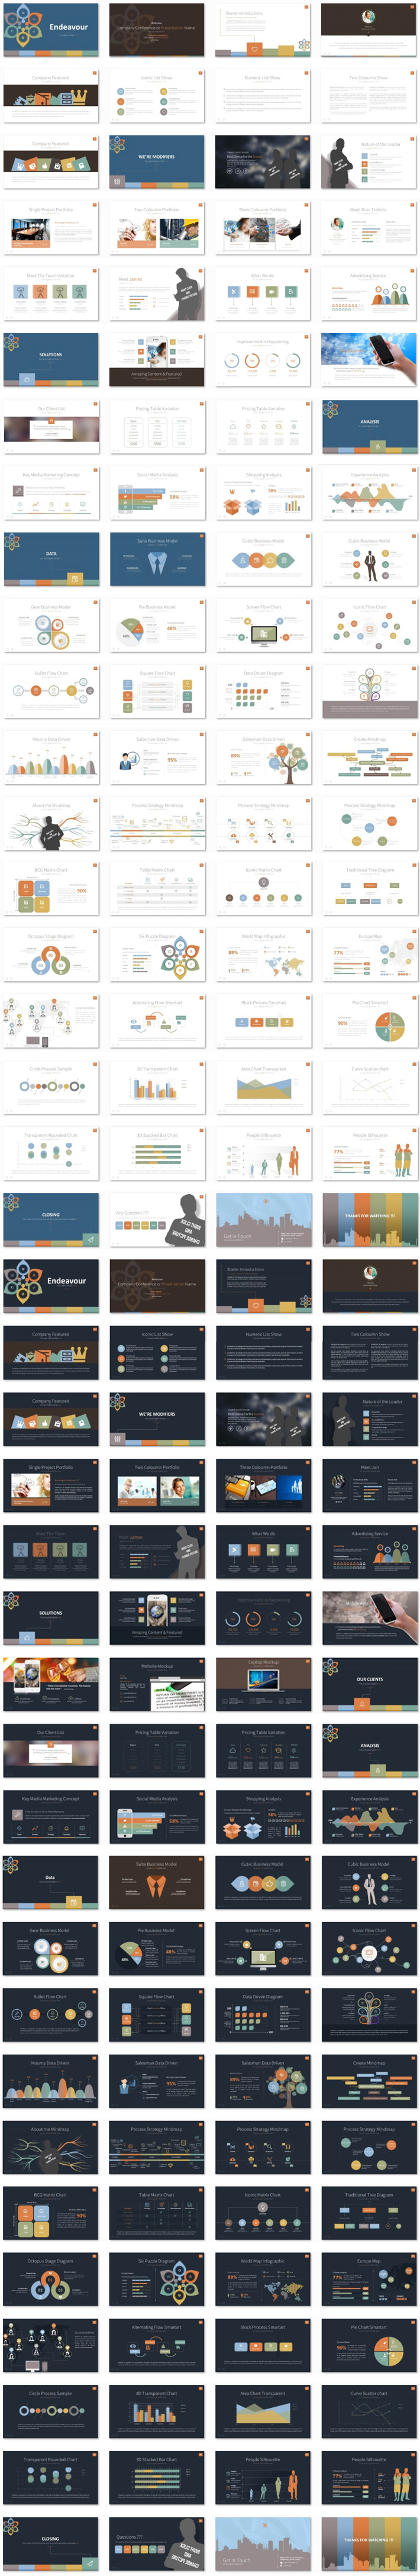 NEW Power Presentation: Endeavour PPT Premium PowerPoint Presentation Template Slide Set